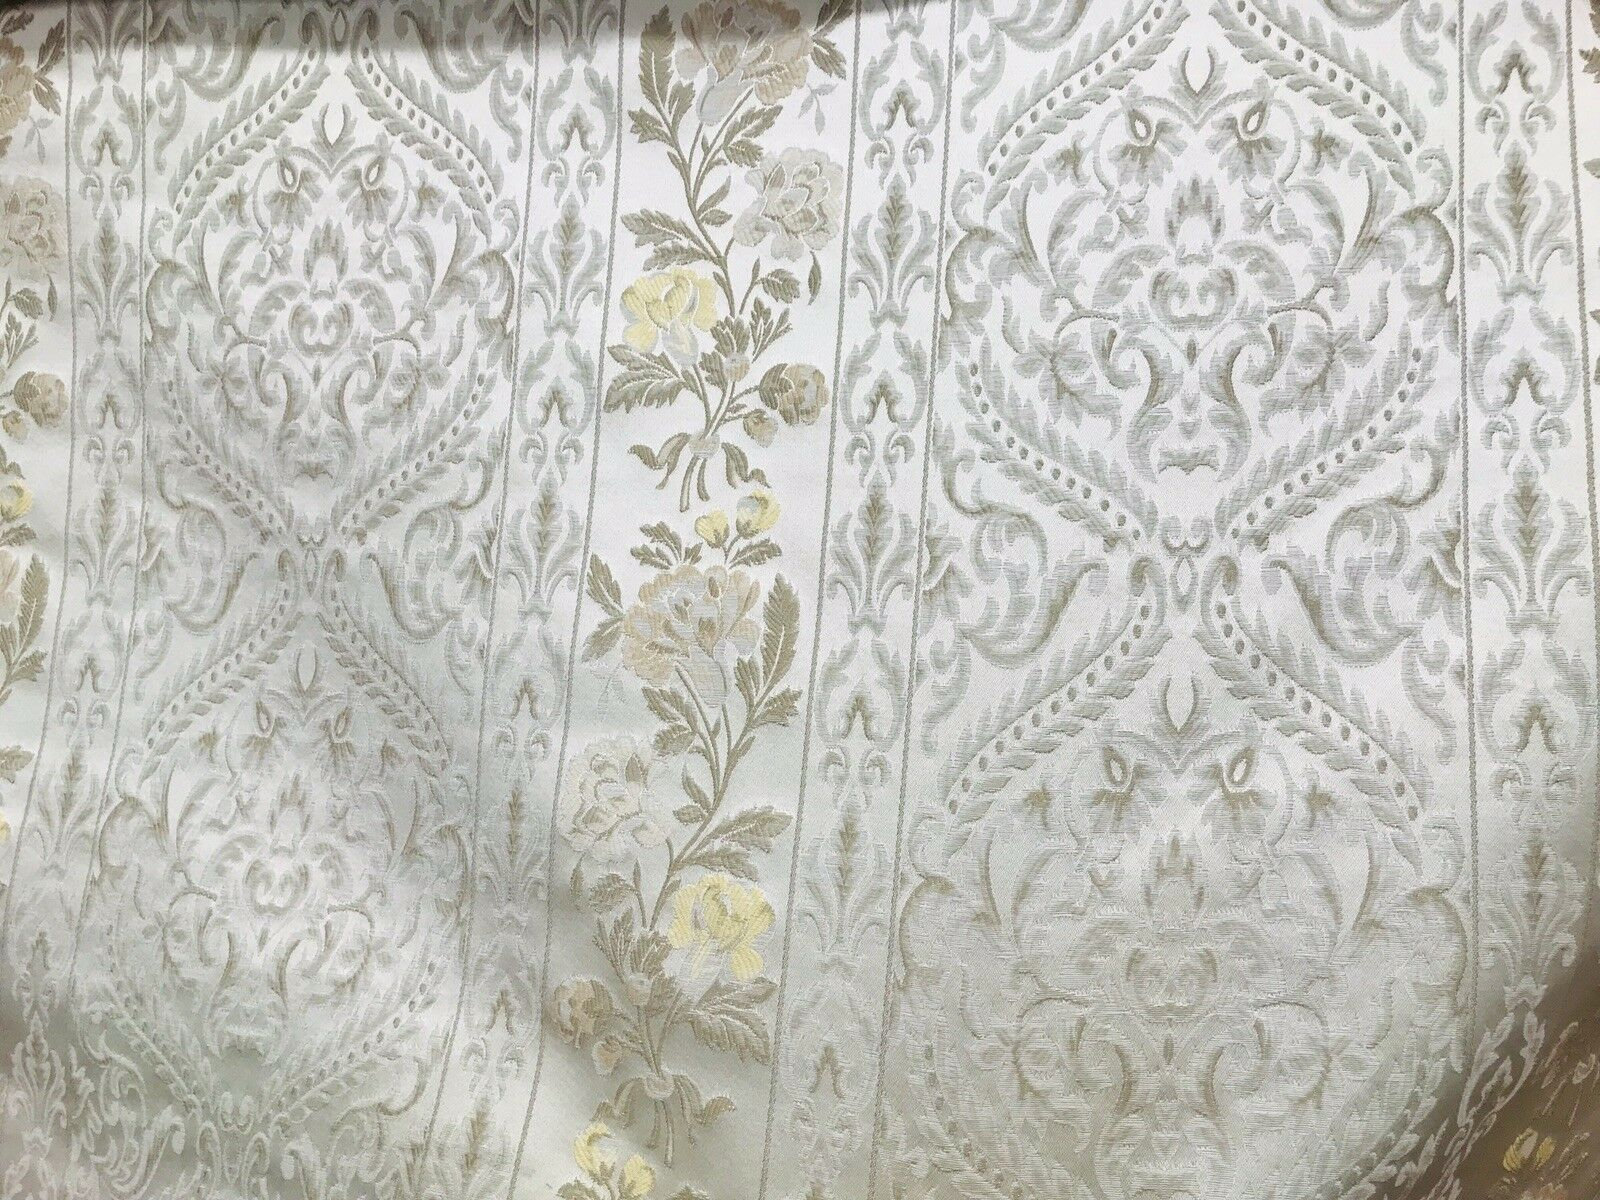 NEW Italian Brocade Satin Fabric- Ivory- Floral Upholstery Neoclassical Louis